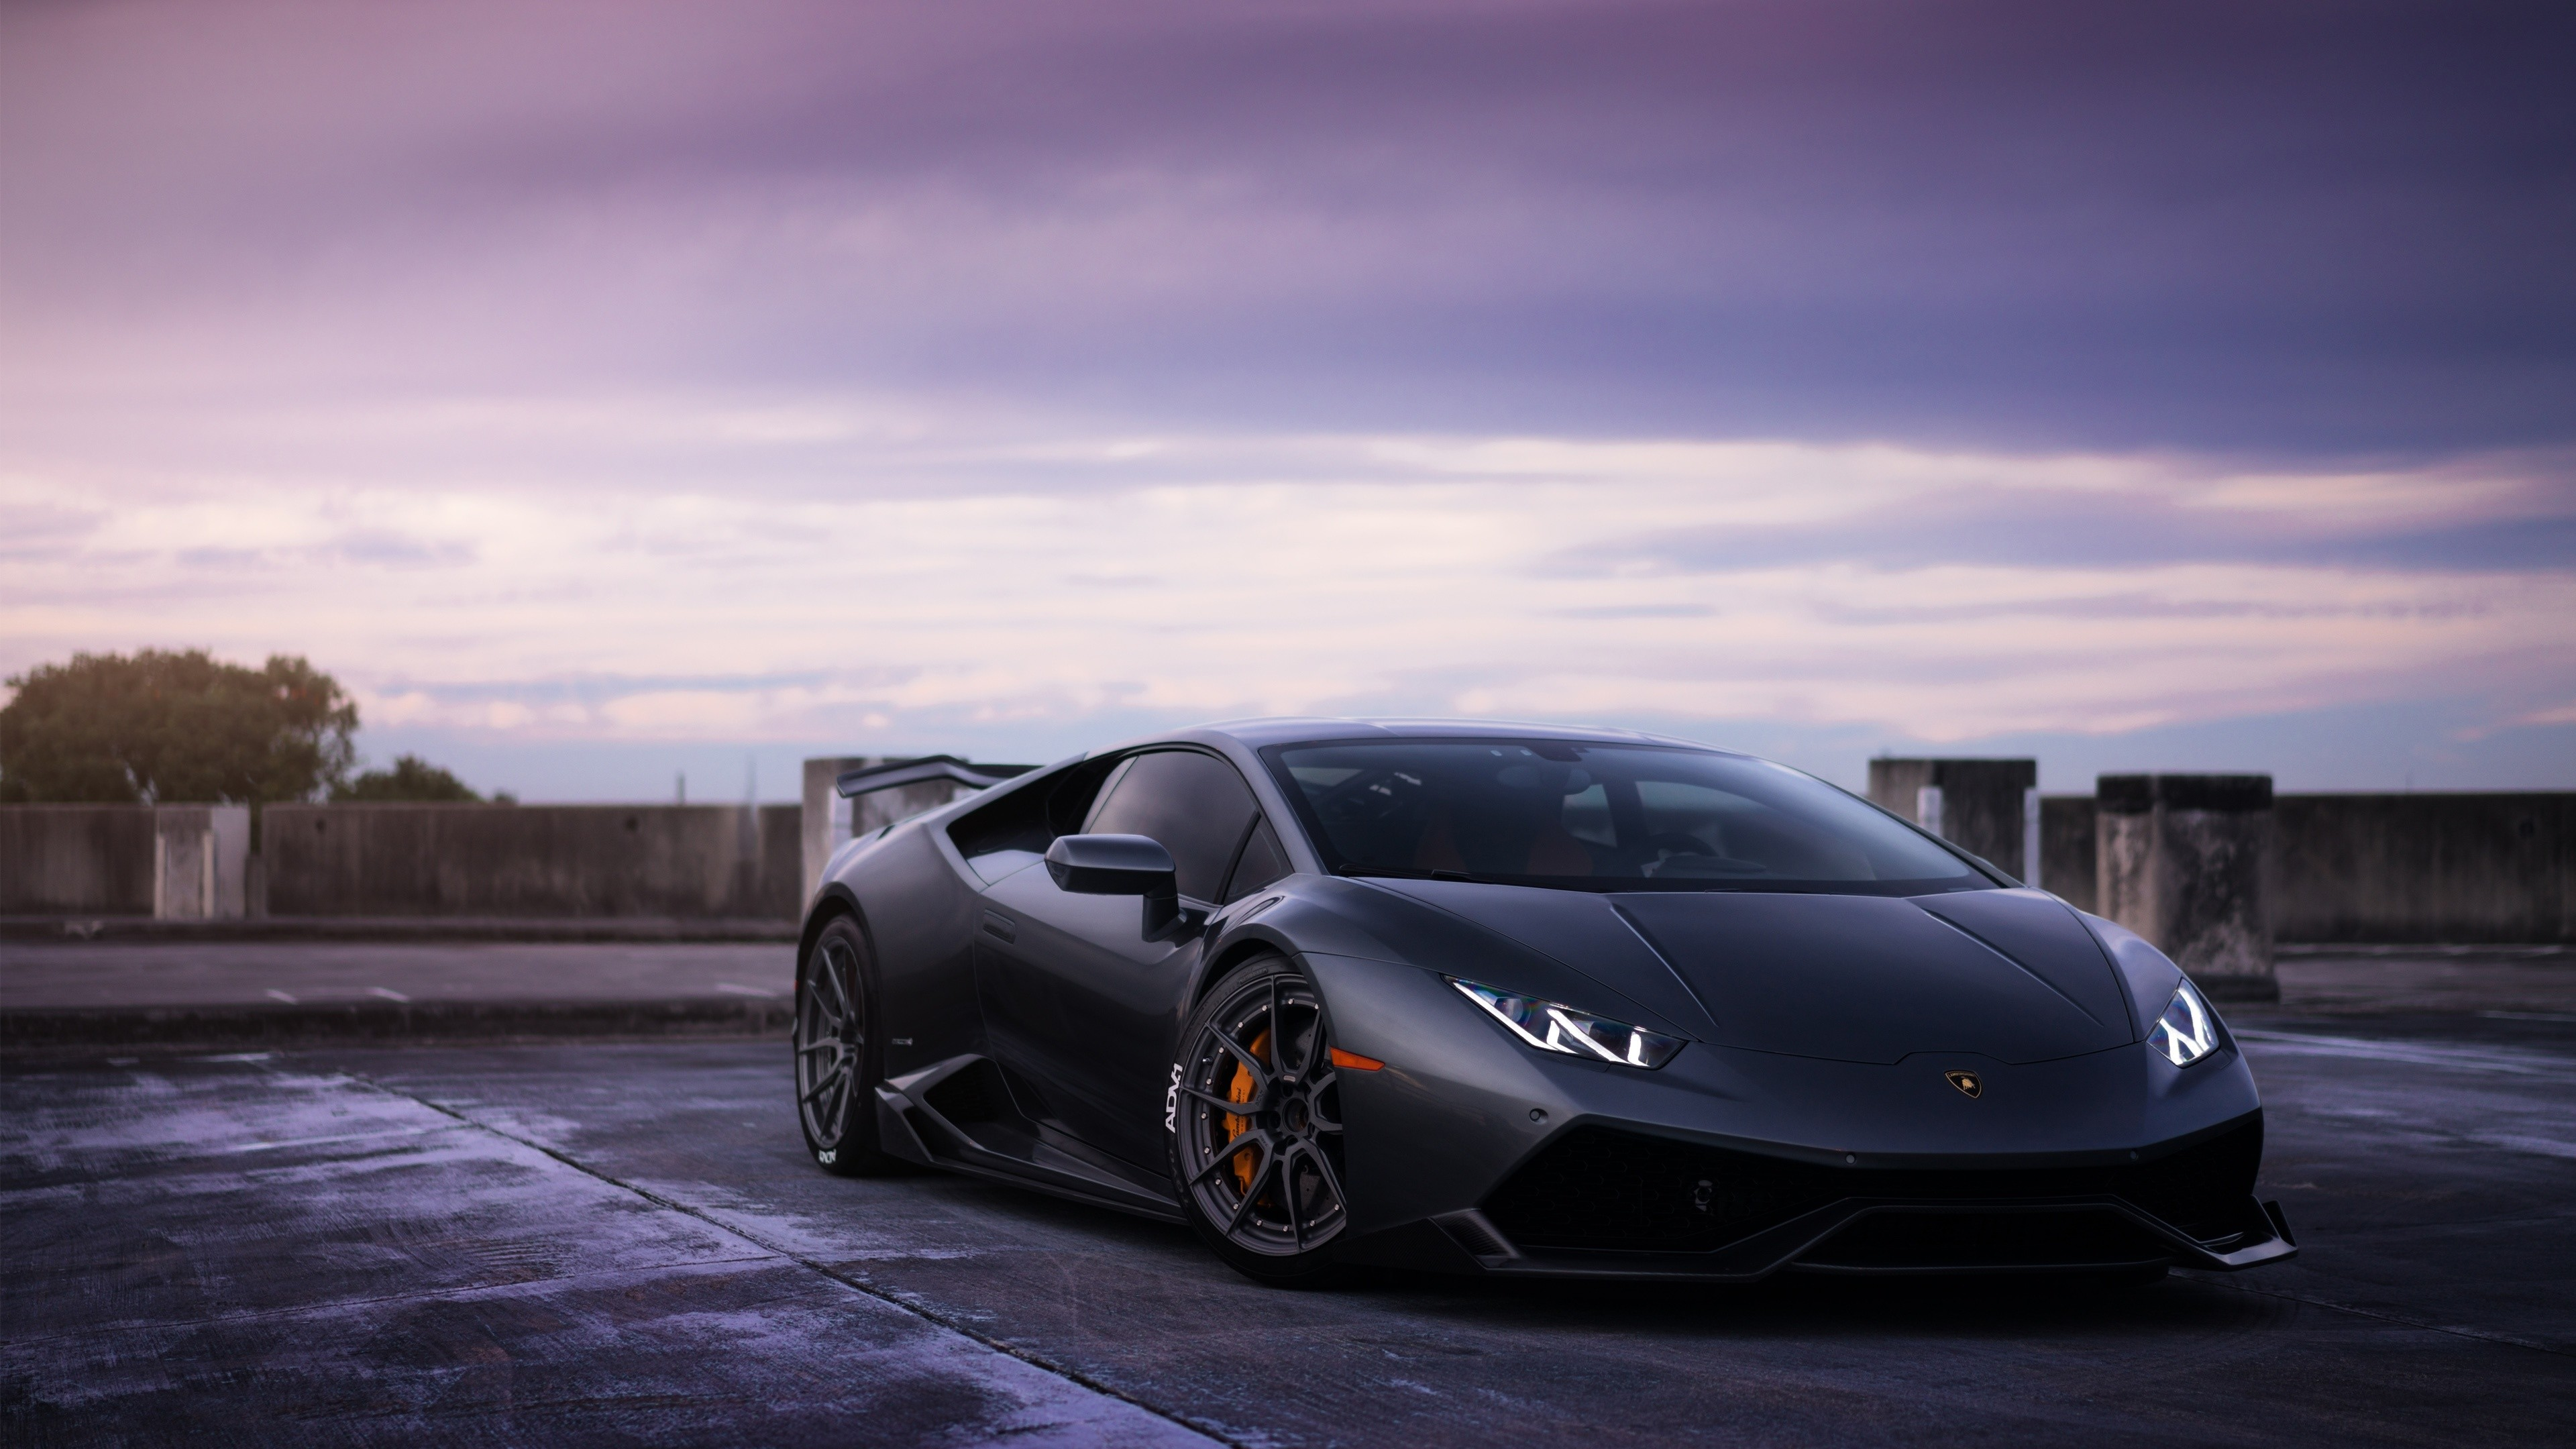 Wallpaper Full Hd 1080p Lamborghini New 2018 79 Images